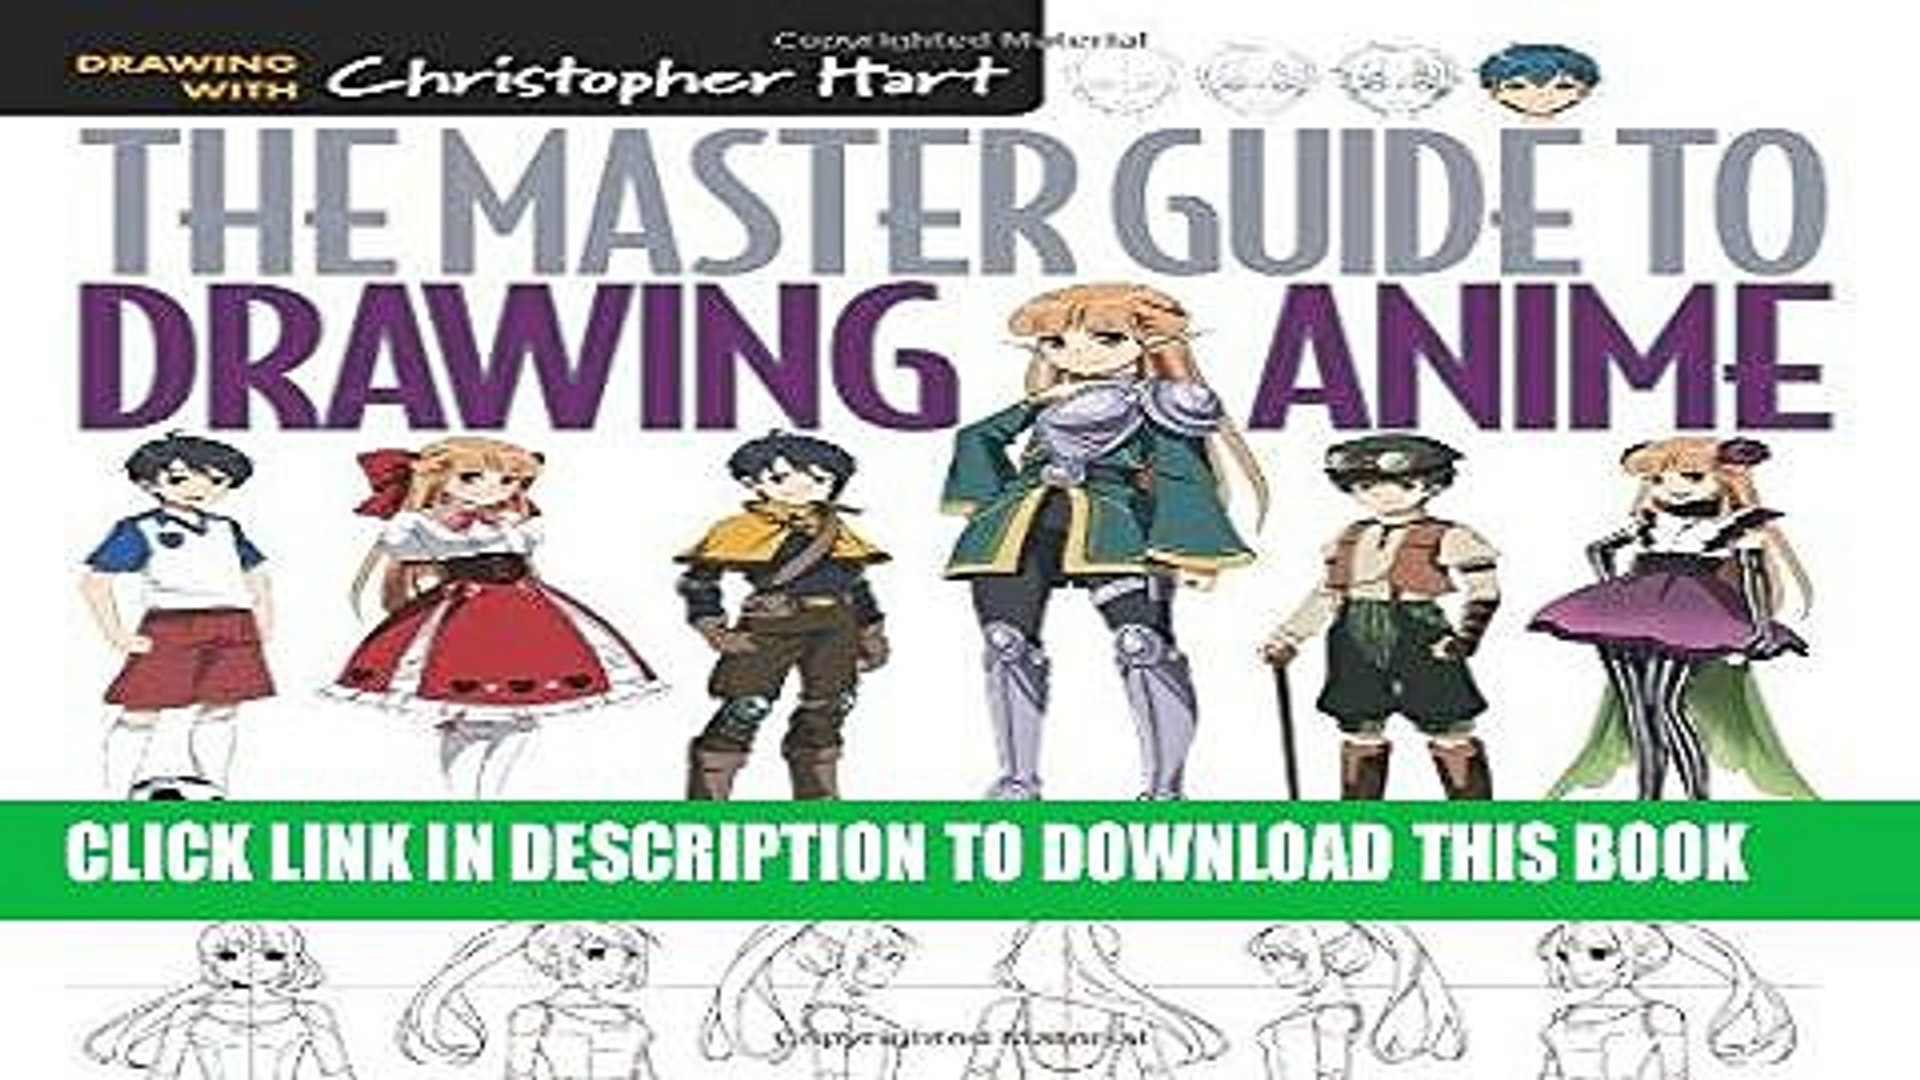 Best Seller The Master Guide To Drawing Anime How To Draw Original Characters From Simple Video Dailymotion